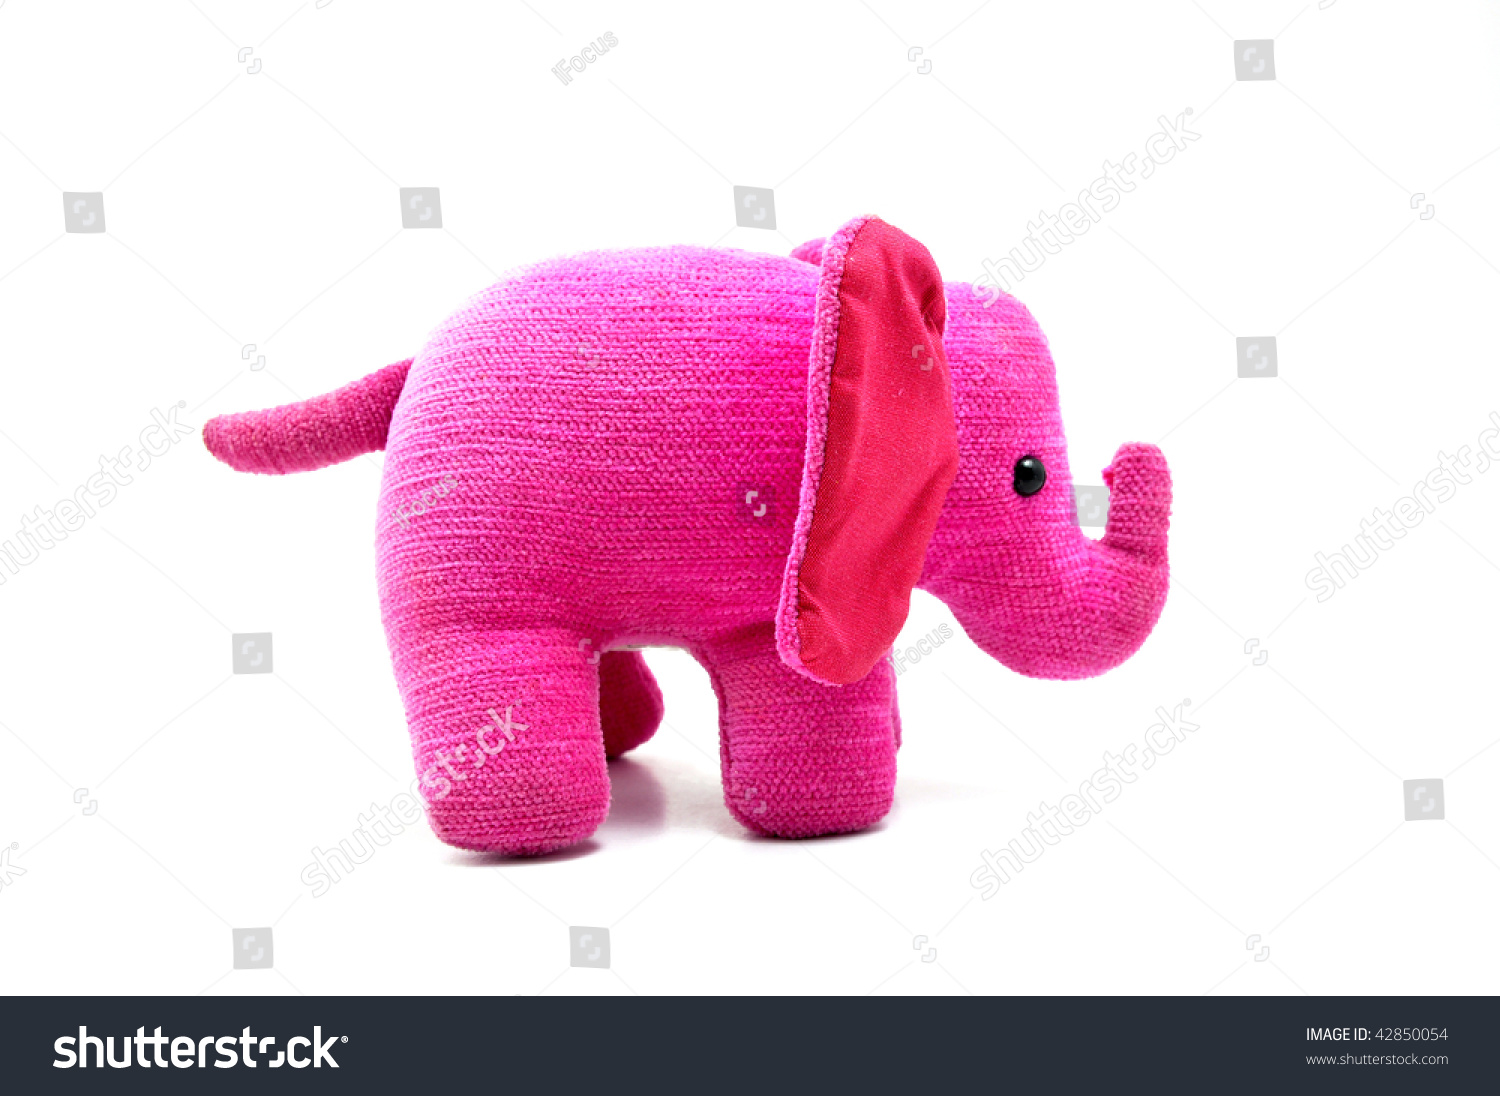 Sweet and soft pink elephant, a perfect gift for home or decoration